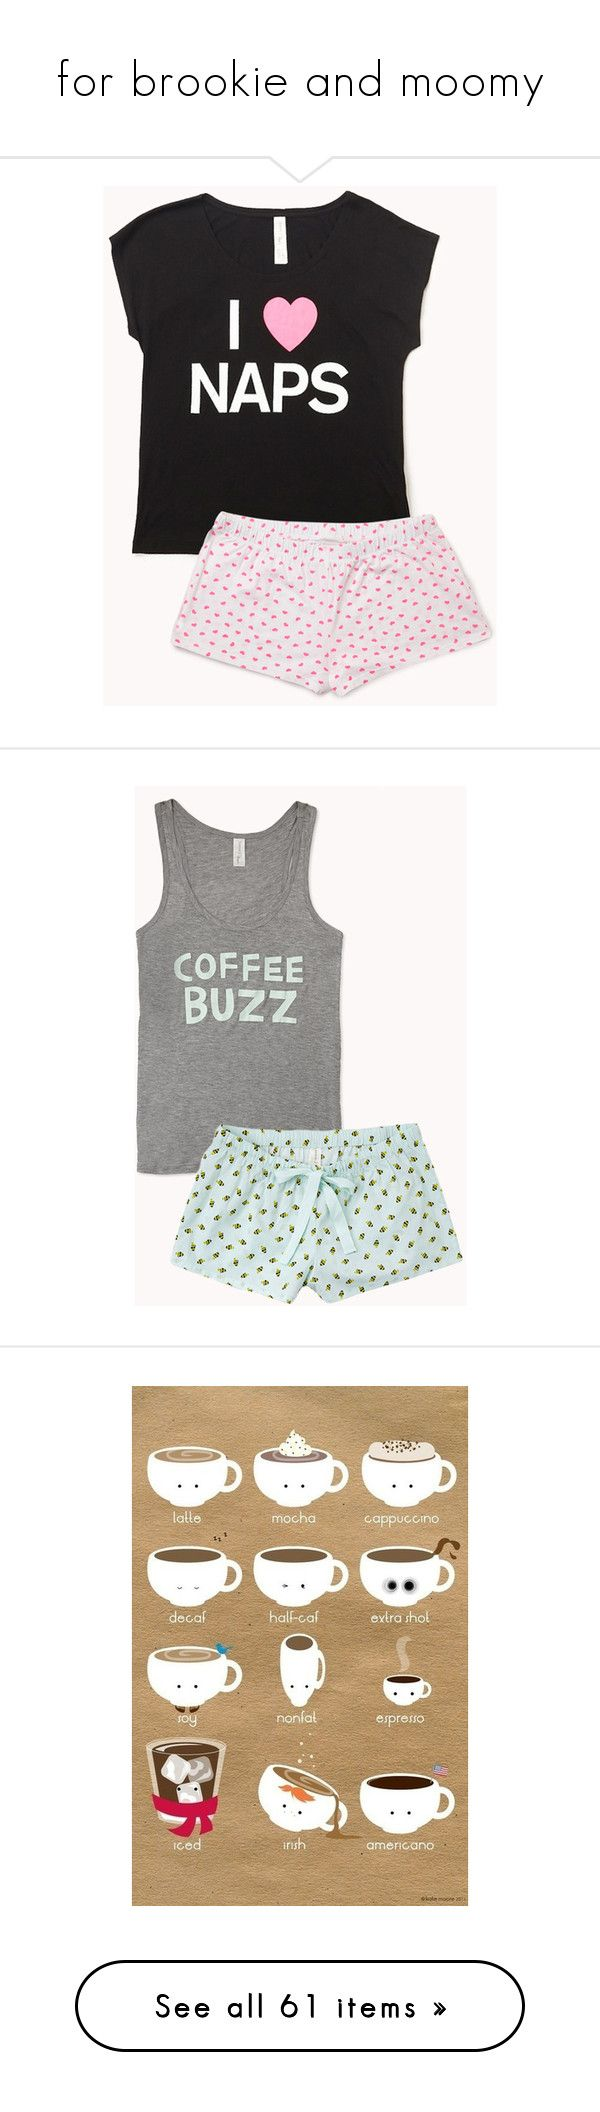 """""""for brookie and moomy"""" by ryan-malone ❤ liked on Polyvore featuring intimates, sleepwear, pajamas, pijamas, pyjamas, sleep, forever 21 pajamas, short sleeve pajama set, forever 21 sleepwear and forever 21"""